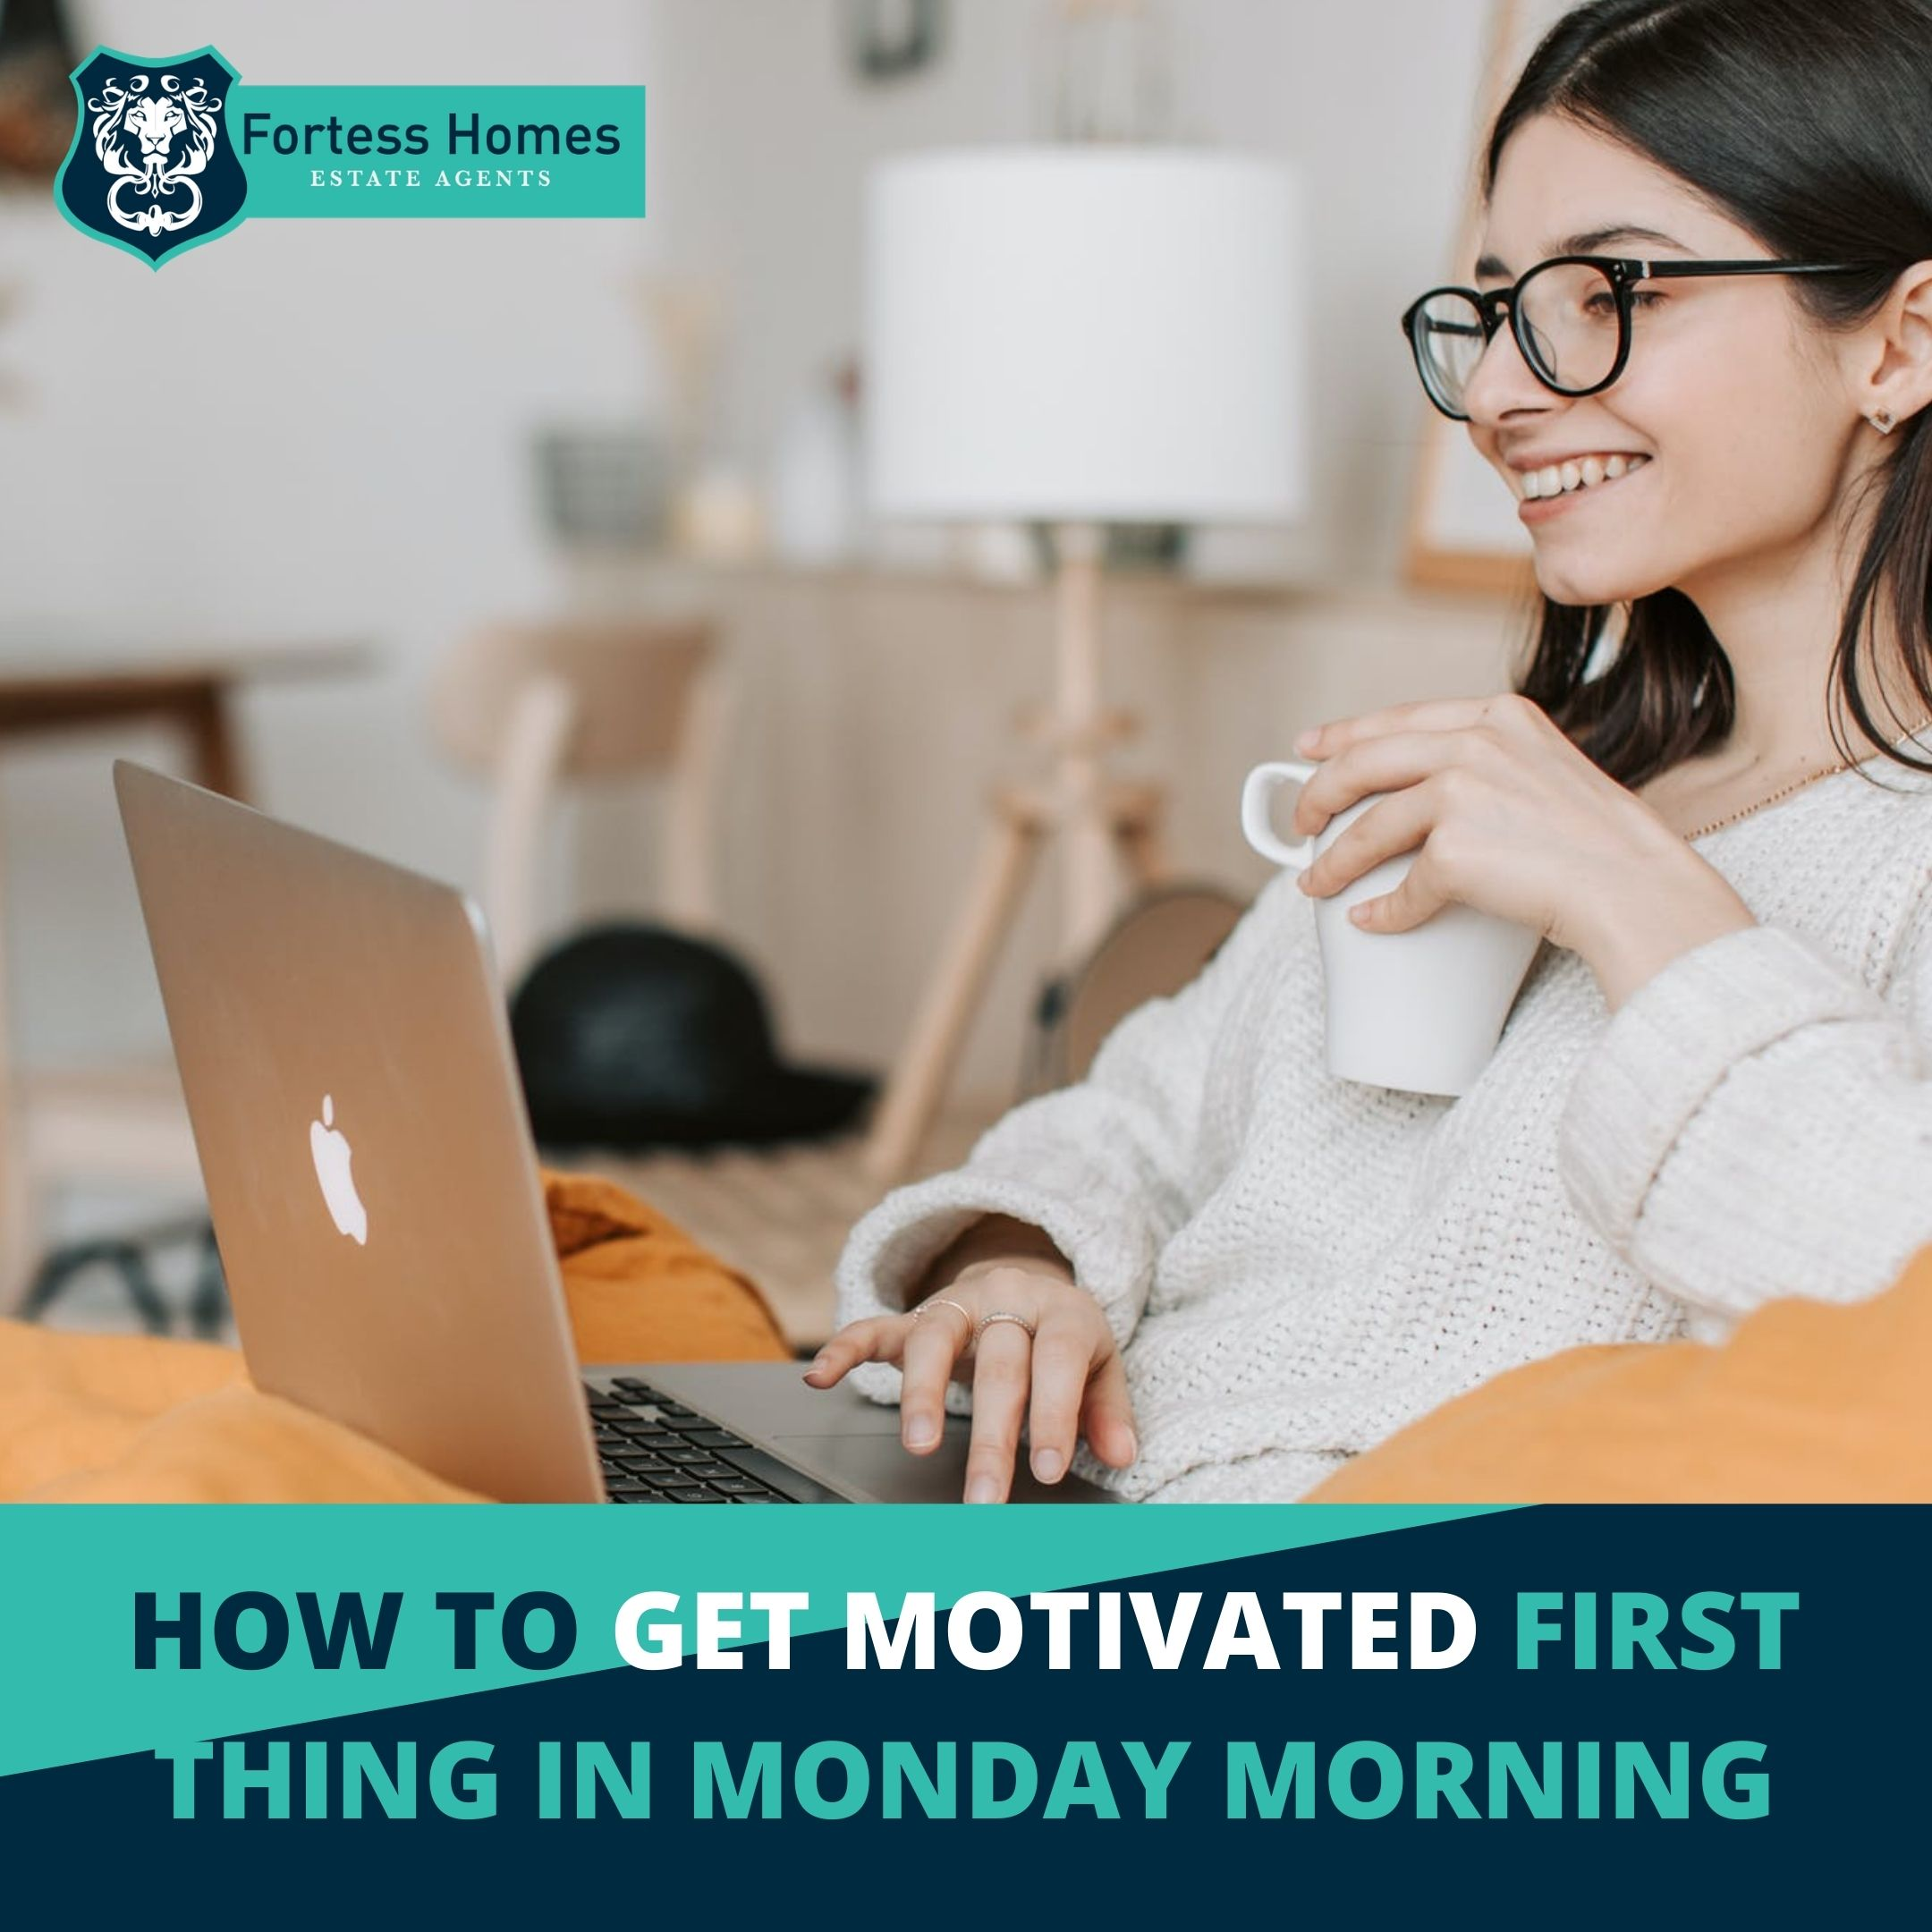 HOW TO GET MOTIVATED FIRST THING IN MONDAY MORNING